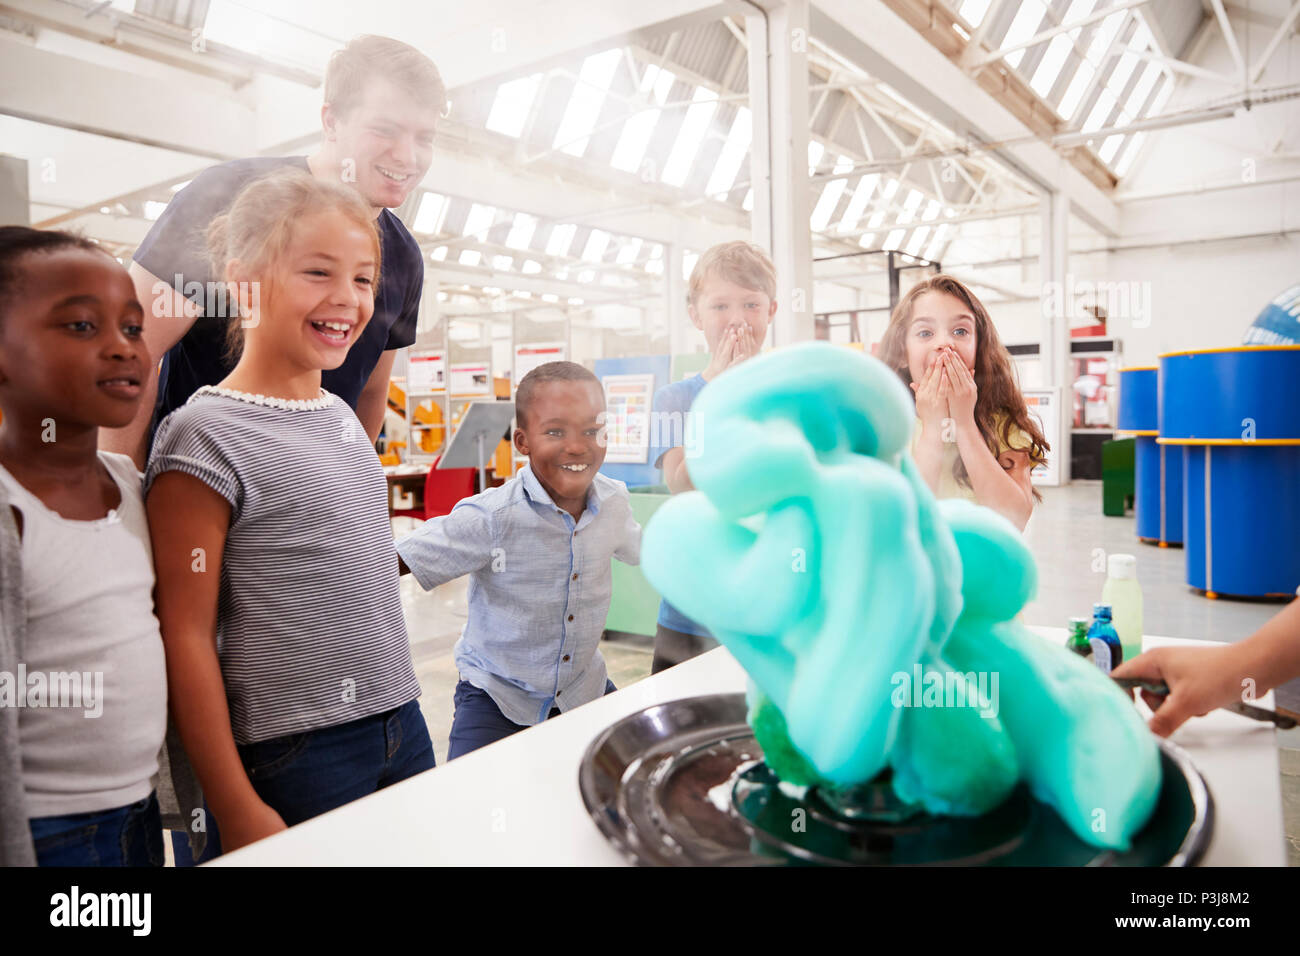 School kids watching an experiment at a science centre - Stock Image